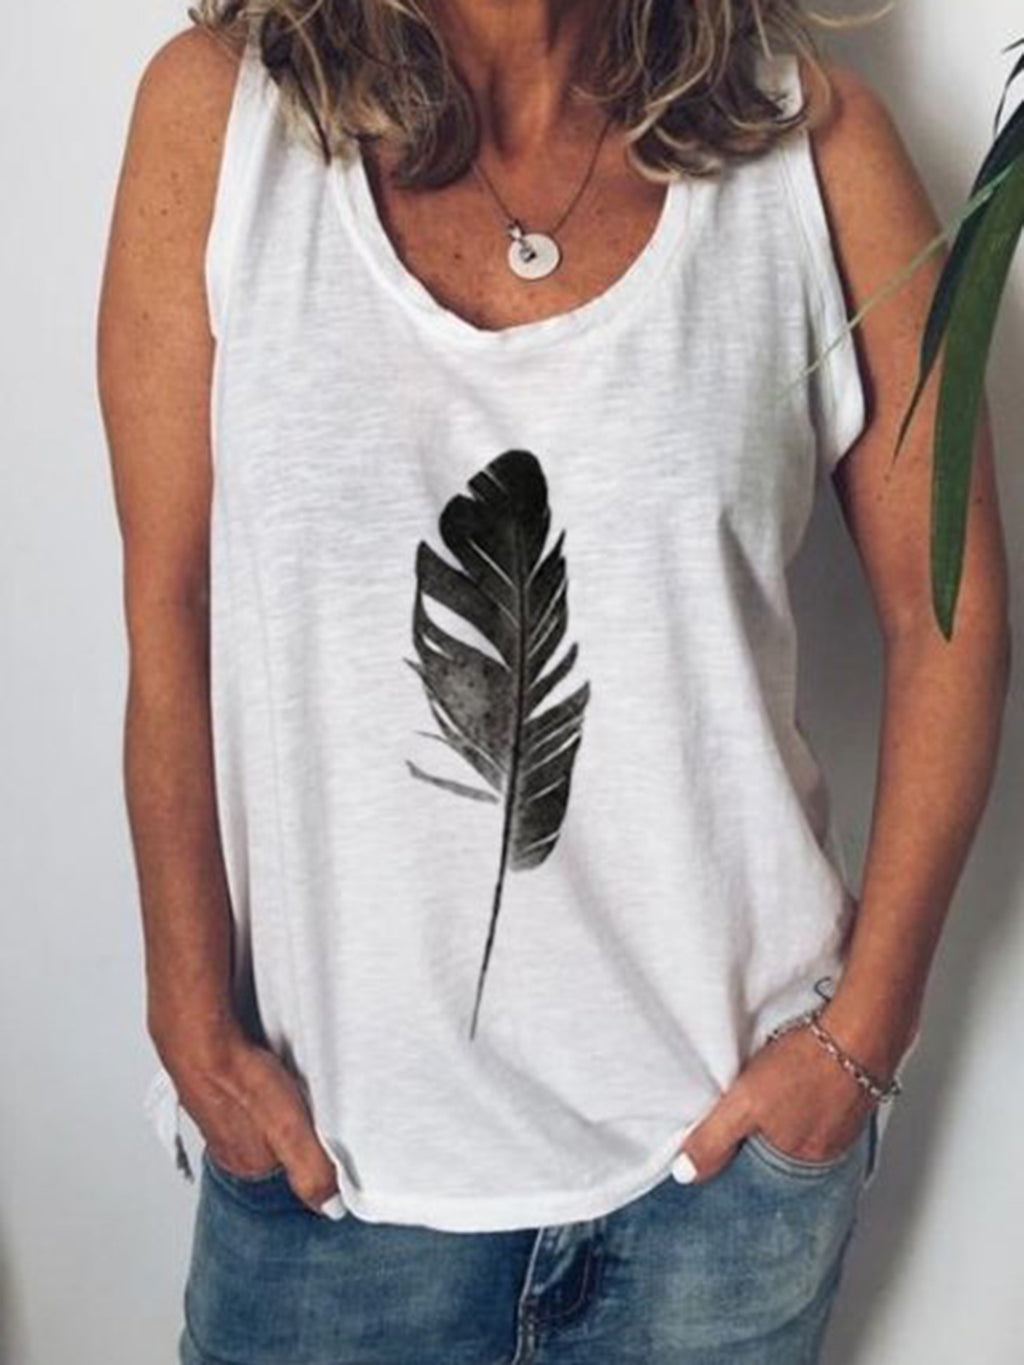 Plus Size Women Sleeveless V Neck Vintage Feather Pattern Casual Tops